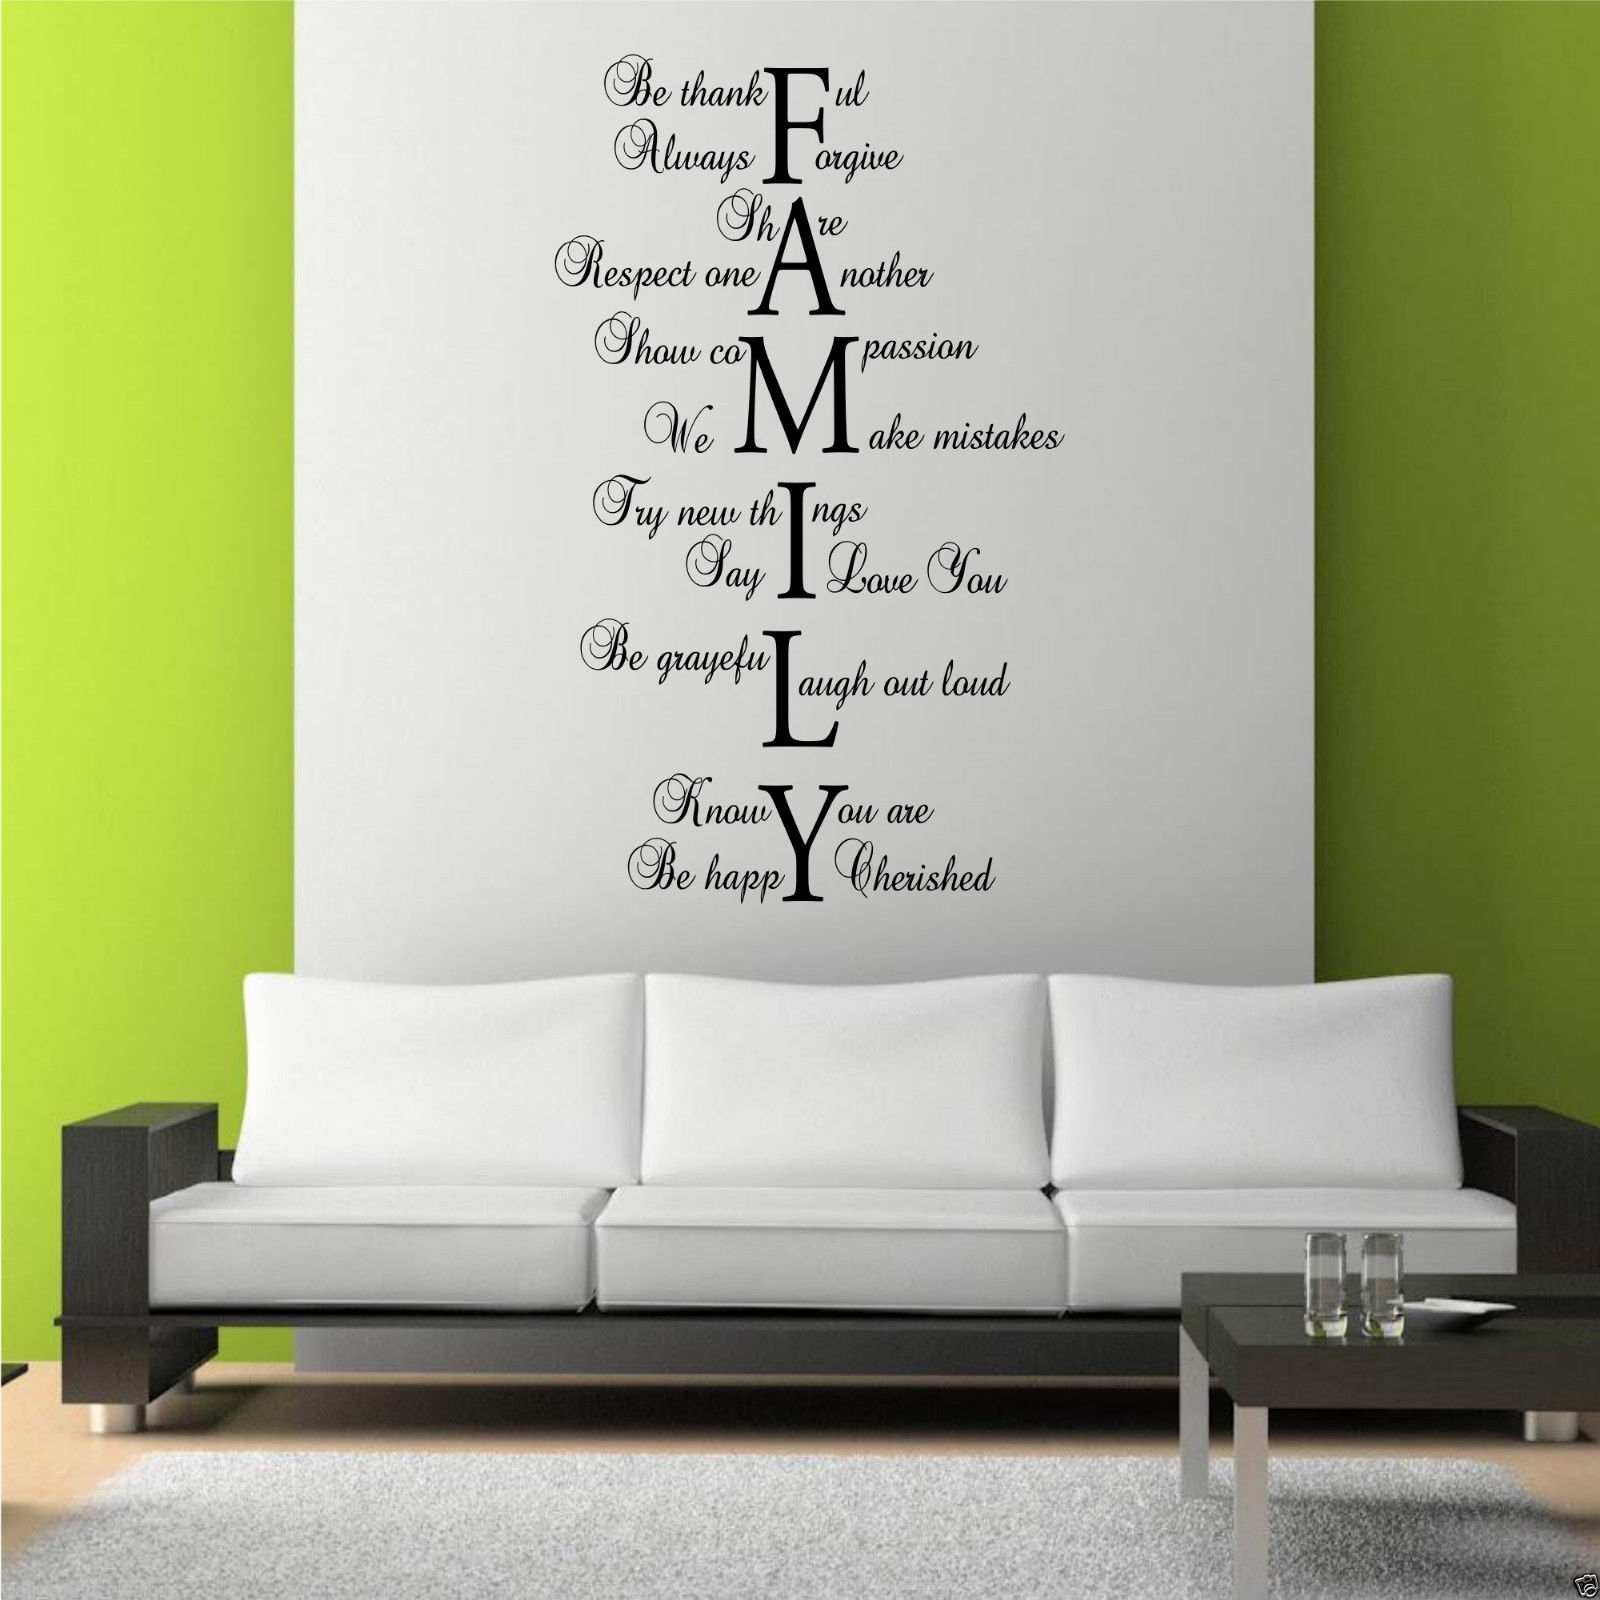 B Awesome Www Wall Cool Www Wall Art Stickers – Wall Decoration Ideas For Best And Newest Wall Art Stickers (View 8 of 15)